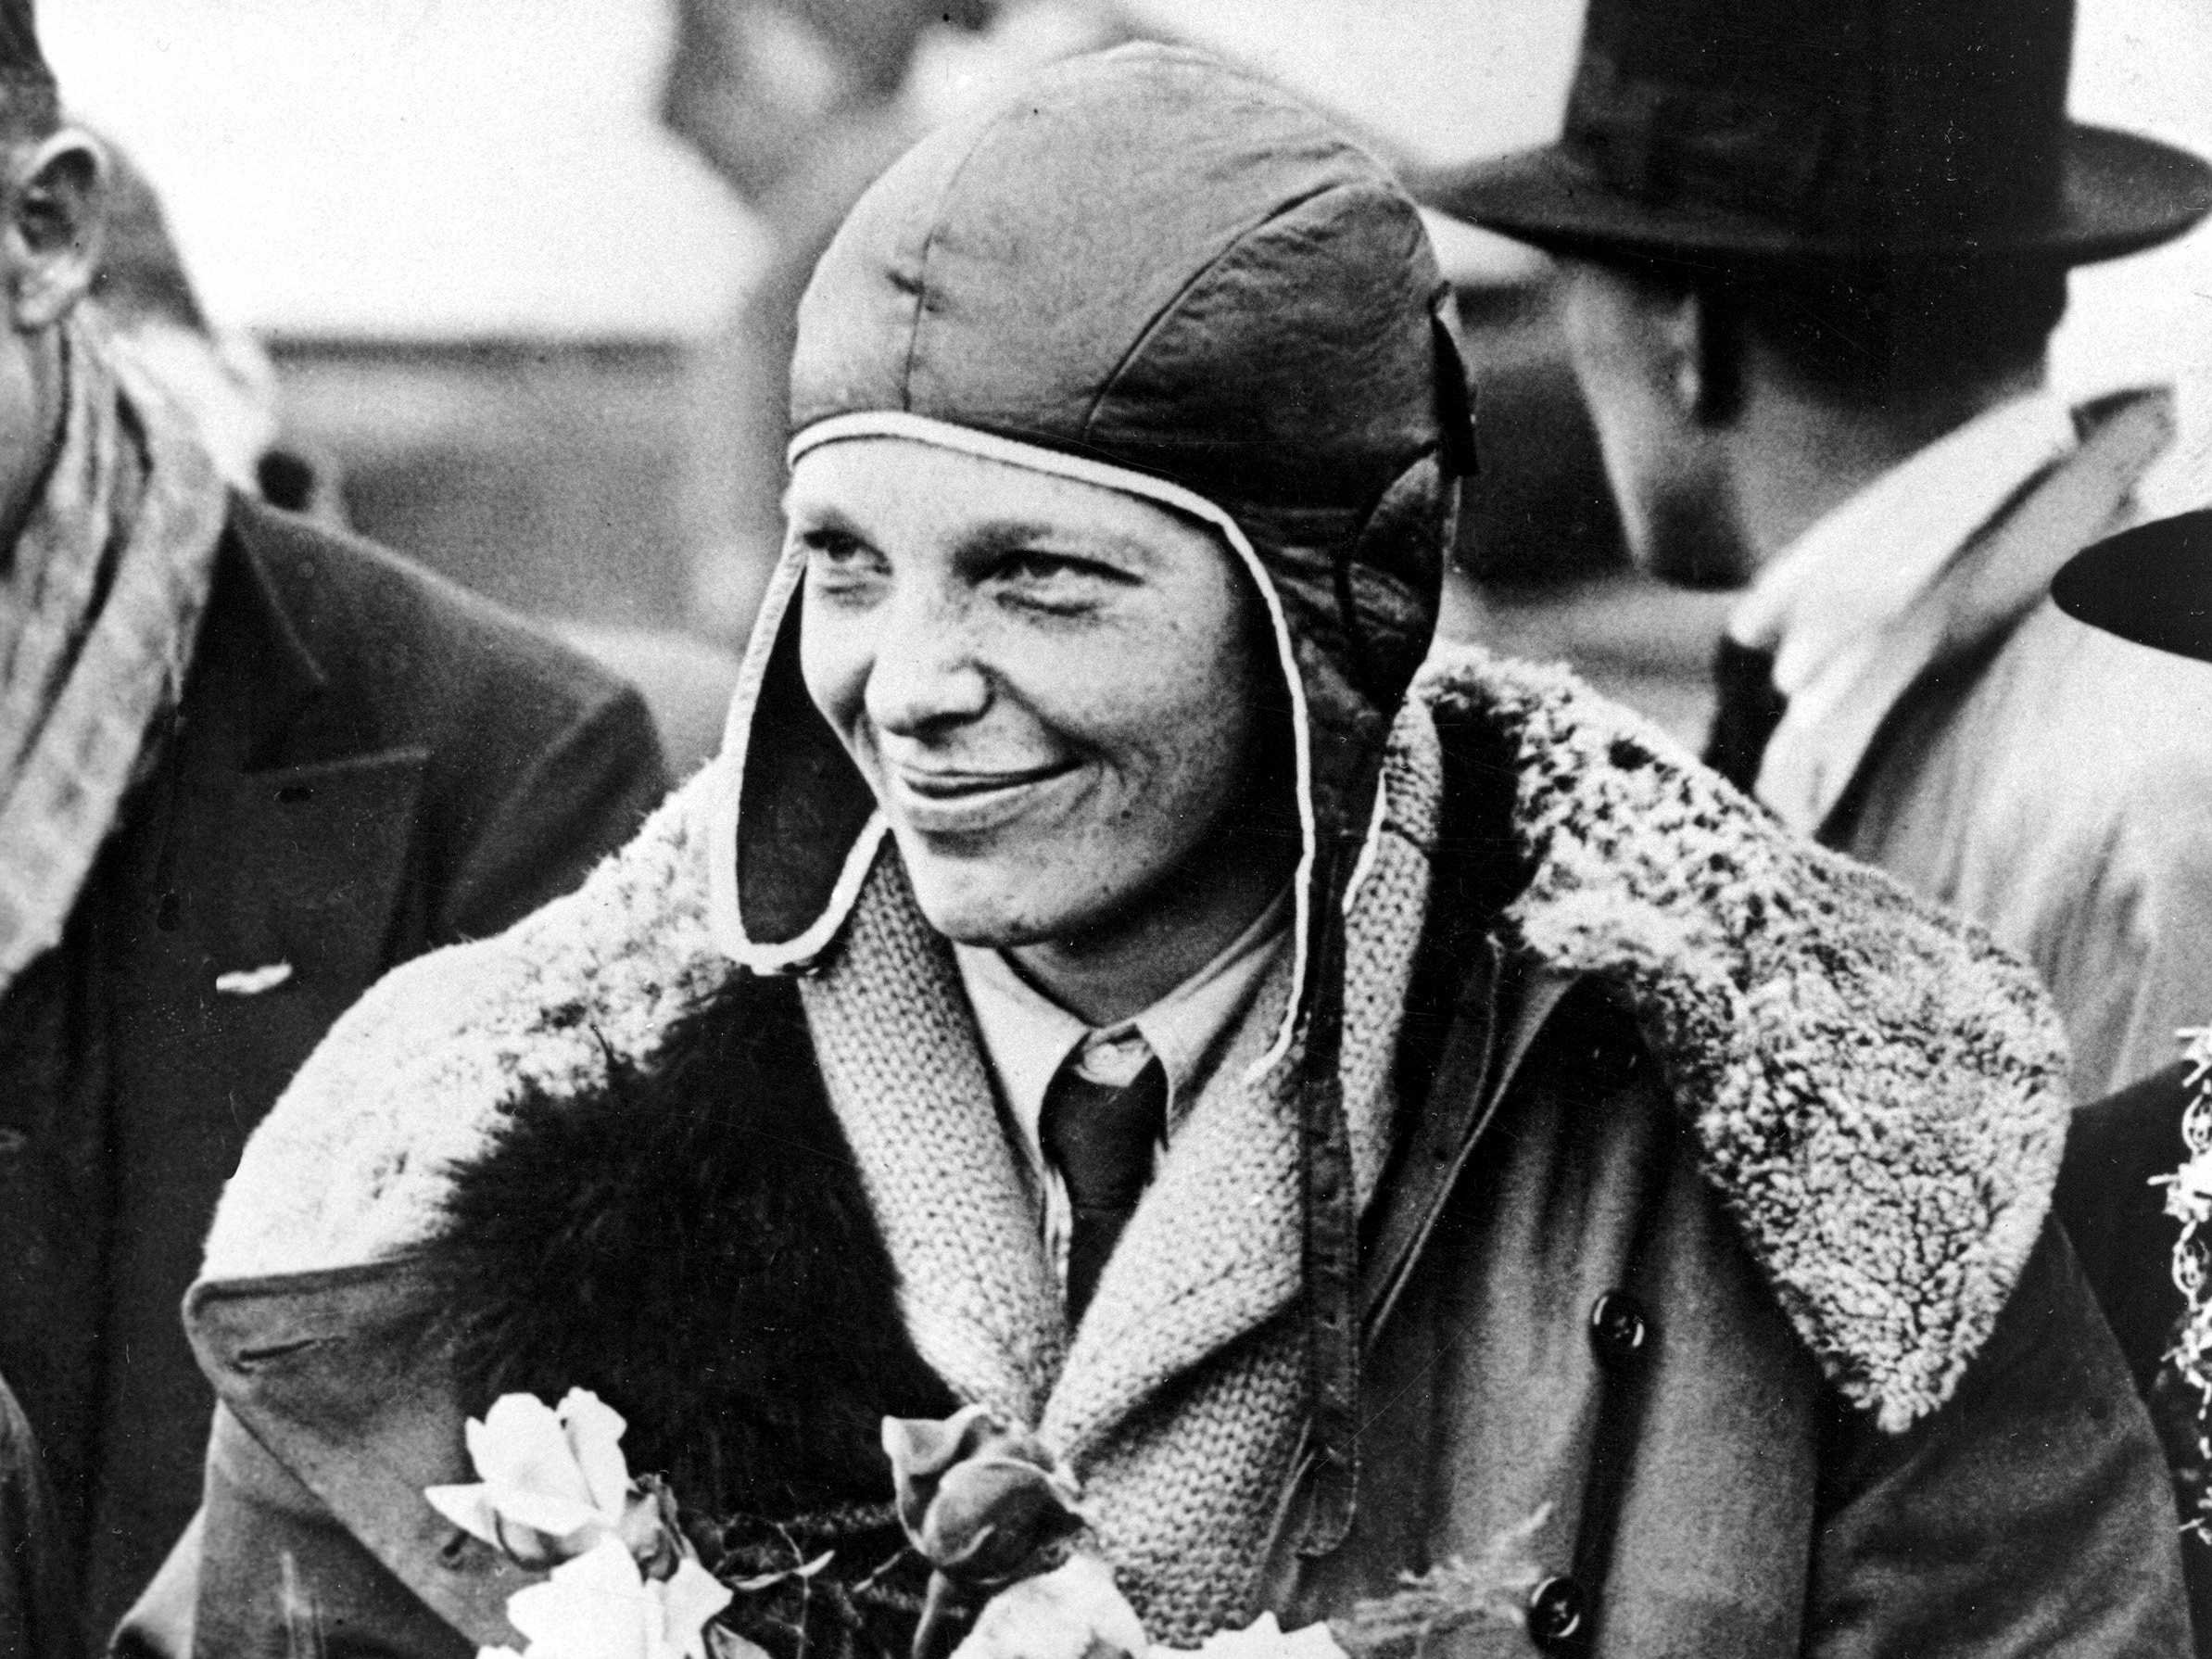 american-aviatrix-amelia-earhart-poses-with-flowers-as-she-arrives-in-southampton-england-after-her-transatlantic-flight-on-the-friendship-from-burry-point-wales-on-june-26-1928